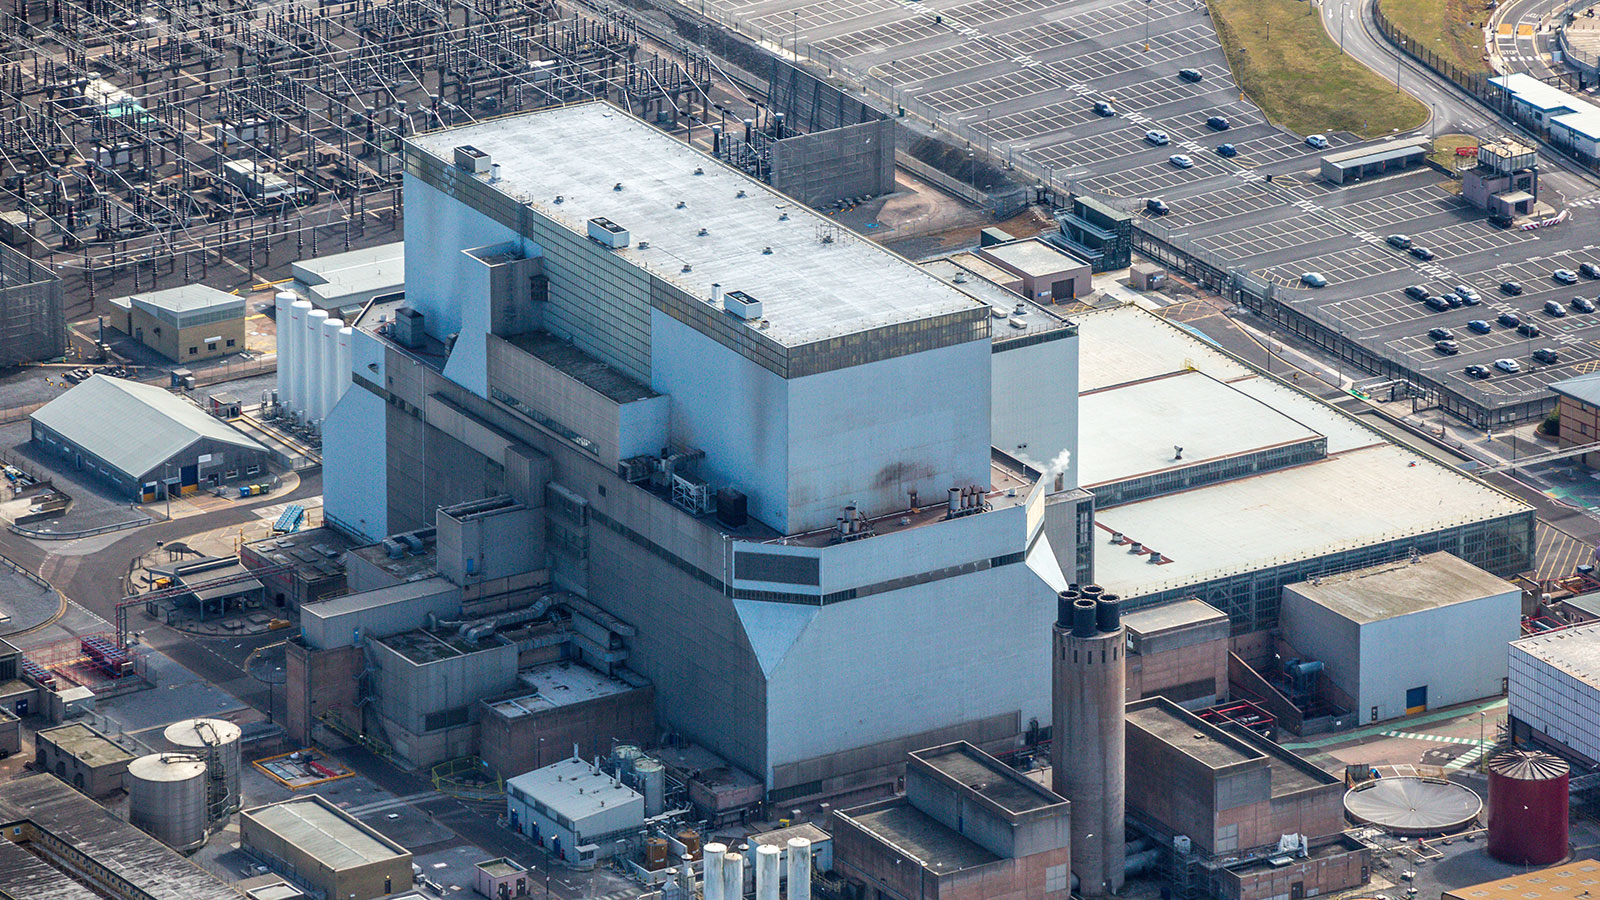 hight resolution of nuclear power plant diagram how it work